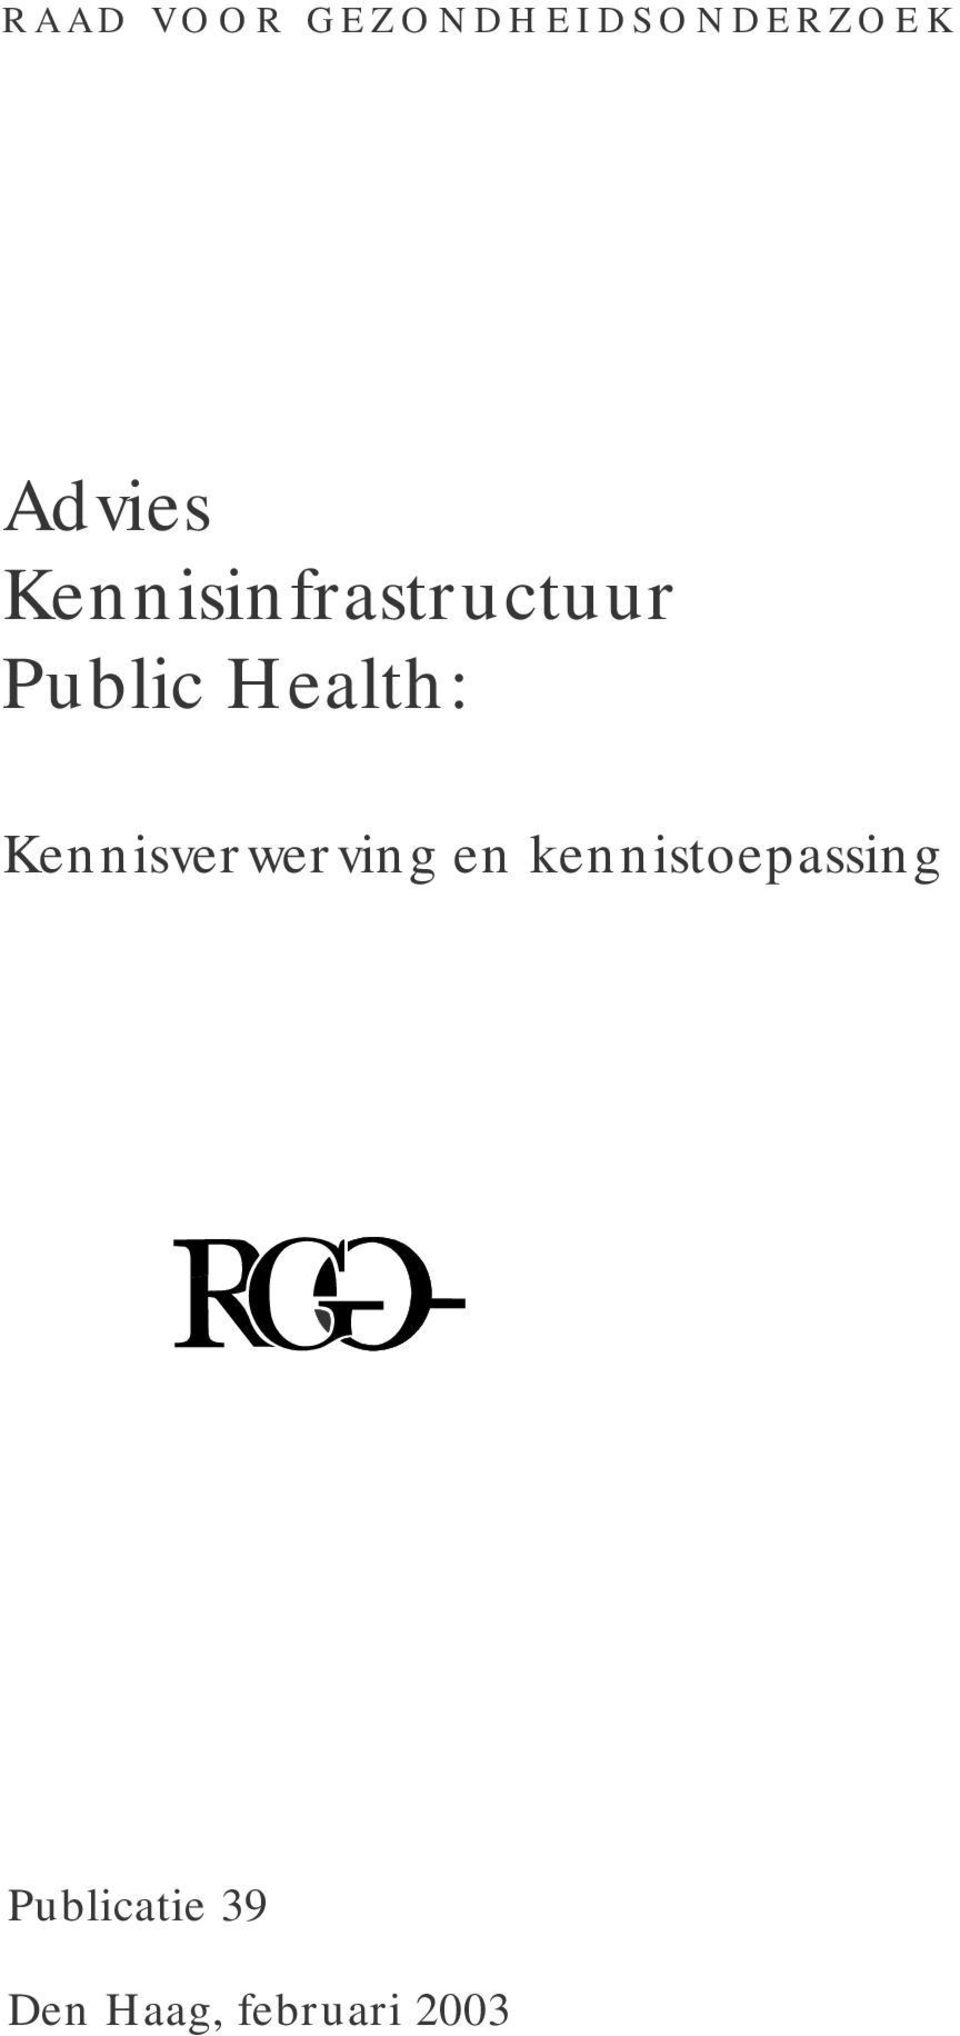 Health: Kennisverwerving en